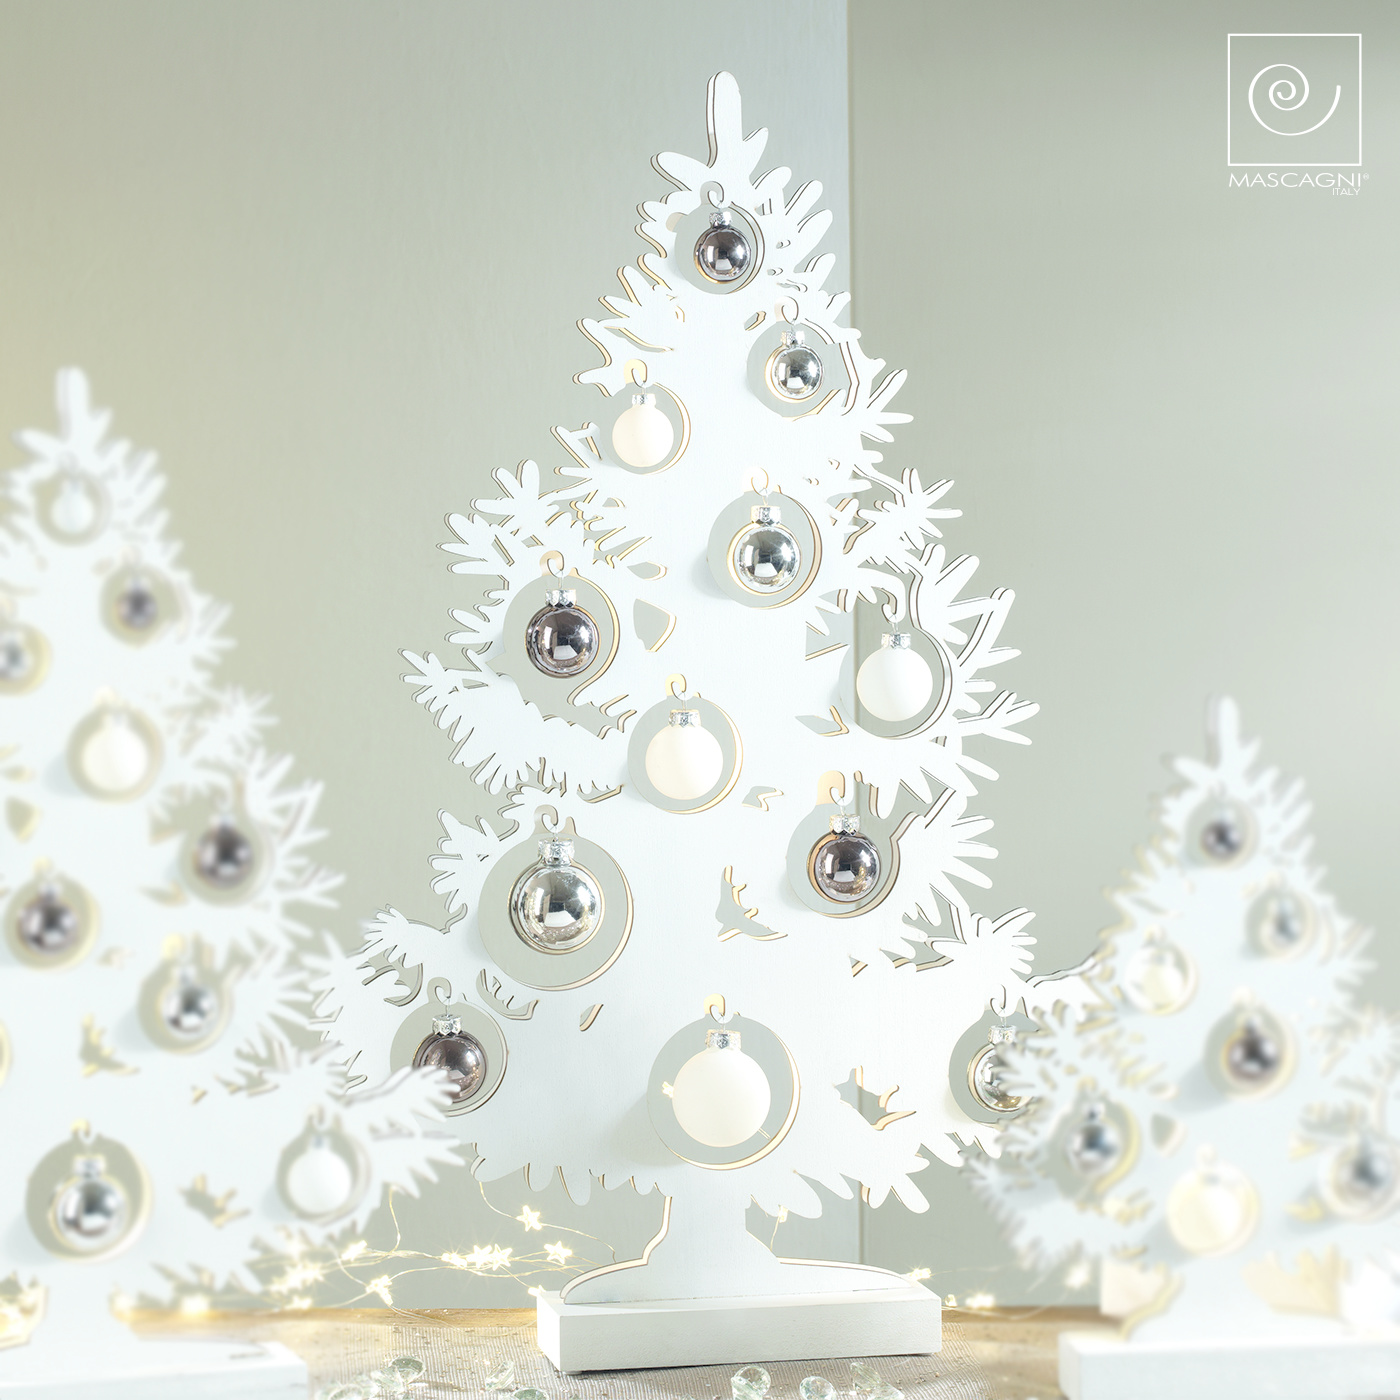 Art Mascagni LED TREE CM.64 - COL. NOCE